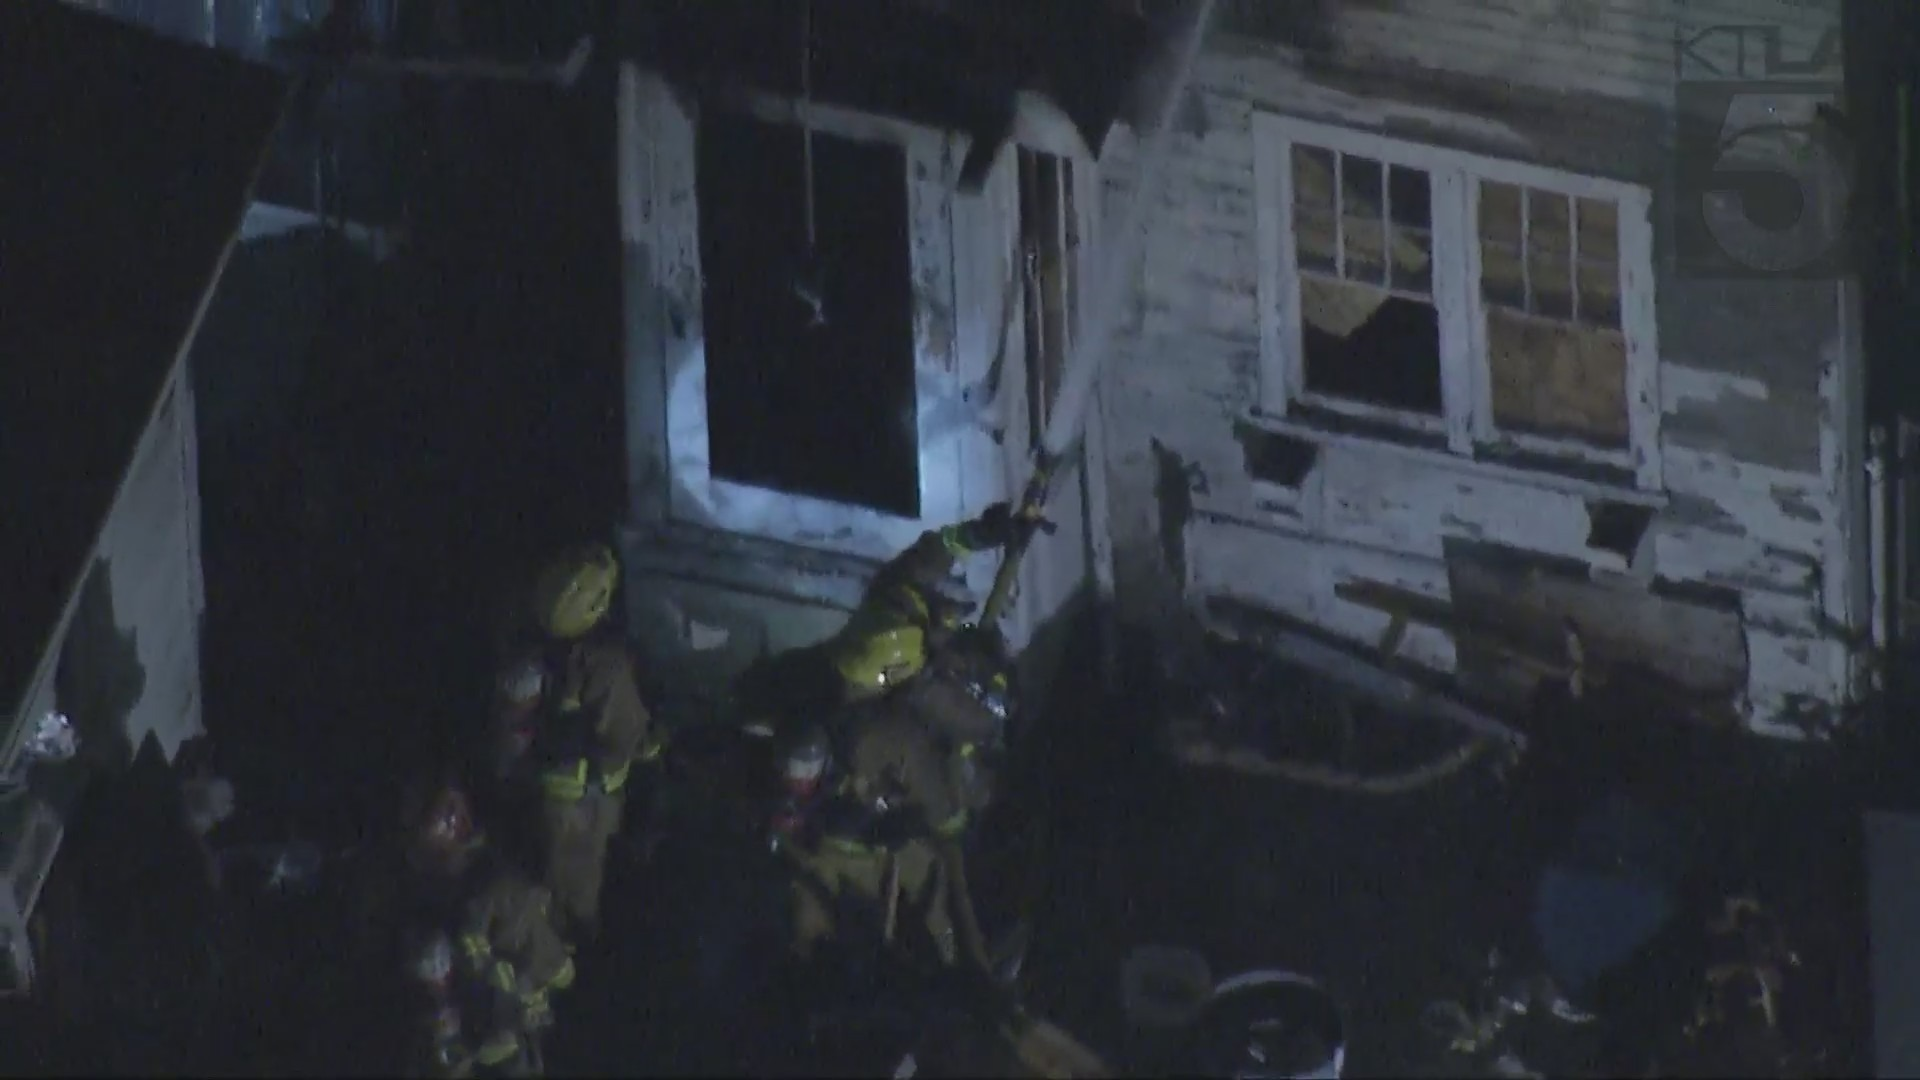 Crews put out a fire at an East Hollywood home on July 26, 2021. (KTLA)